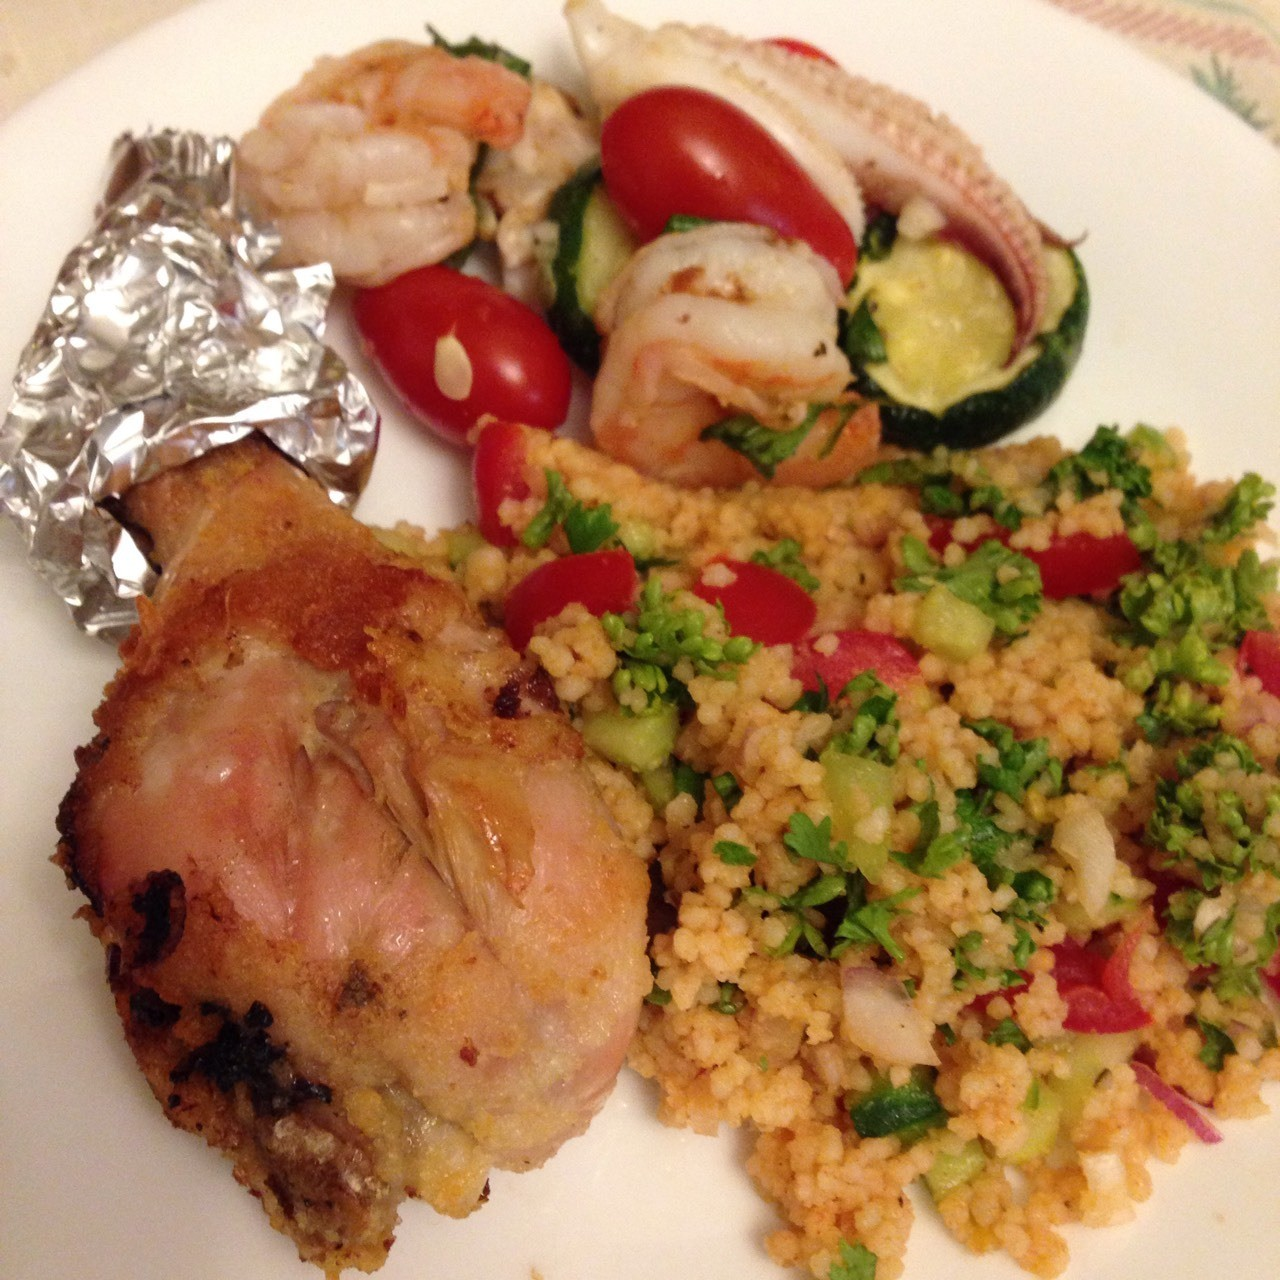 Couscous salad with fried chicken